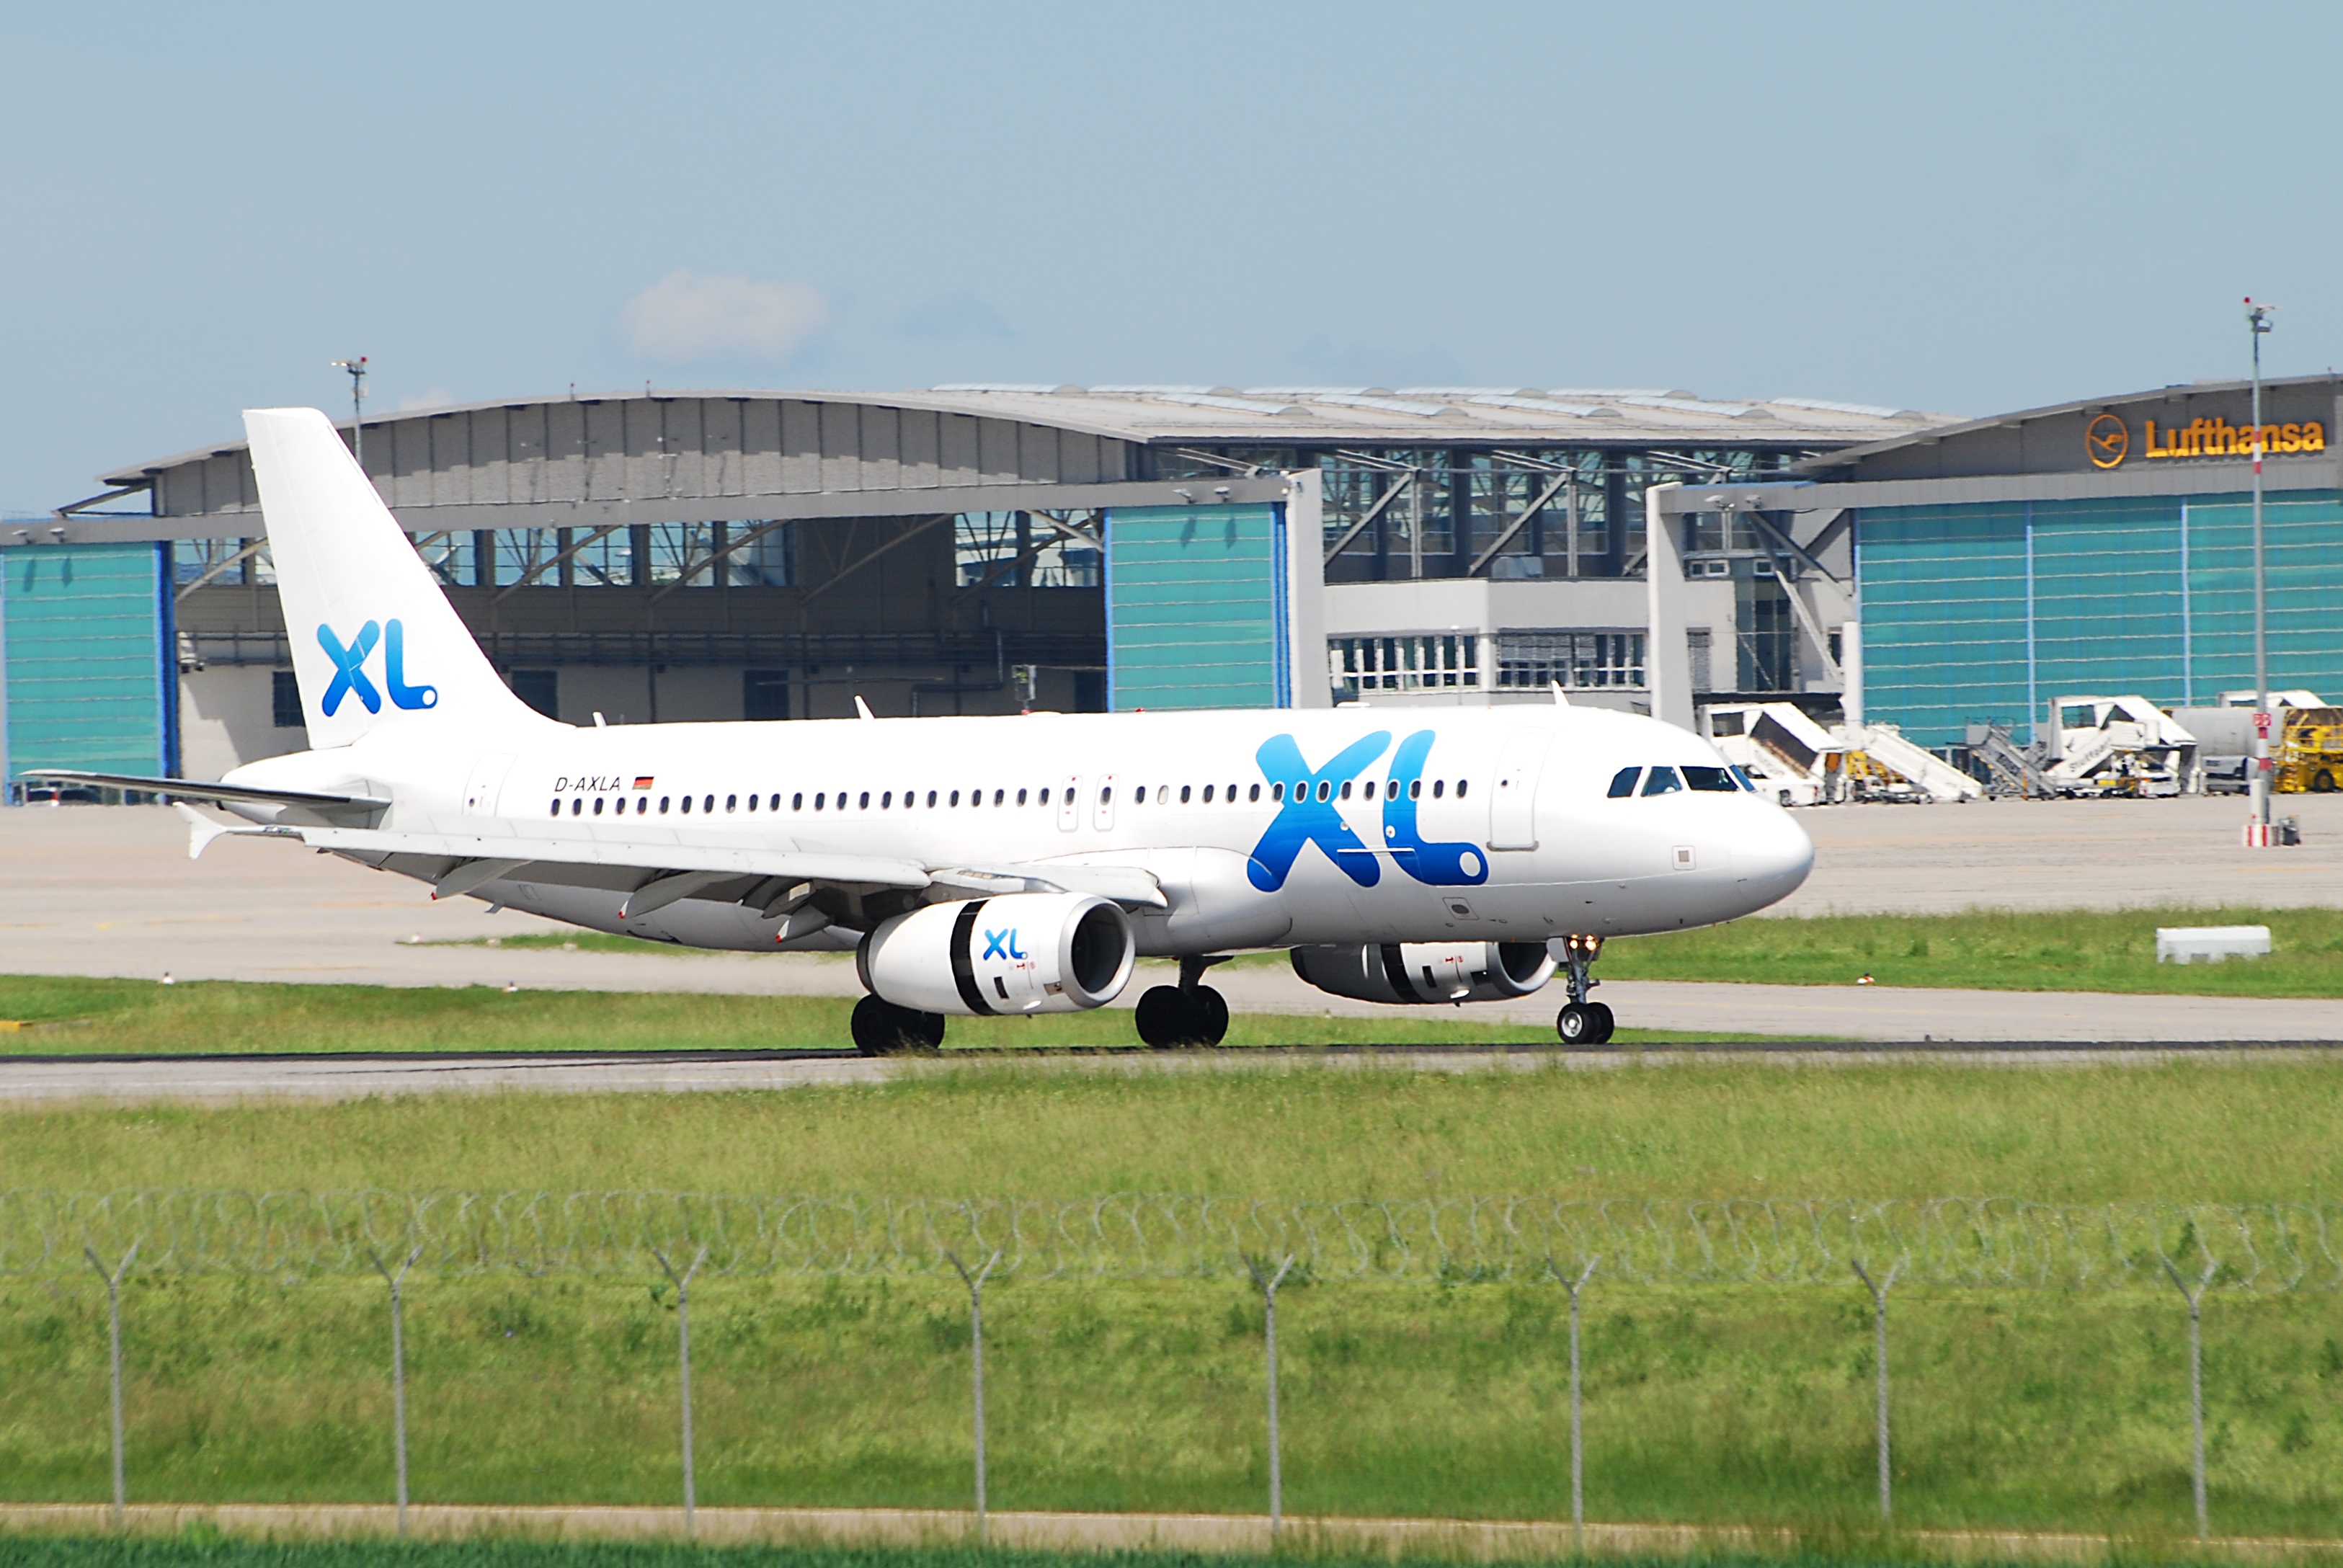 Airline ExEl Airways Germany (XL Airways Germany). Official sayt.2